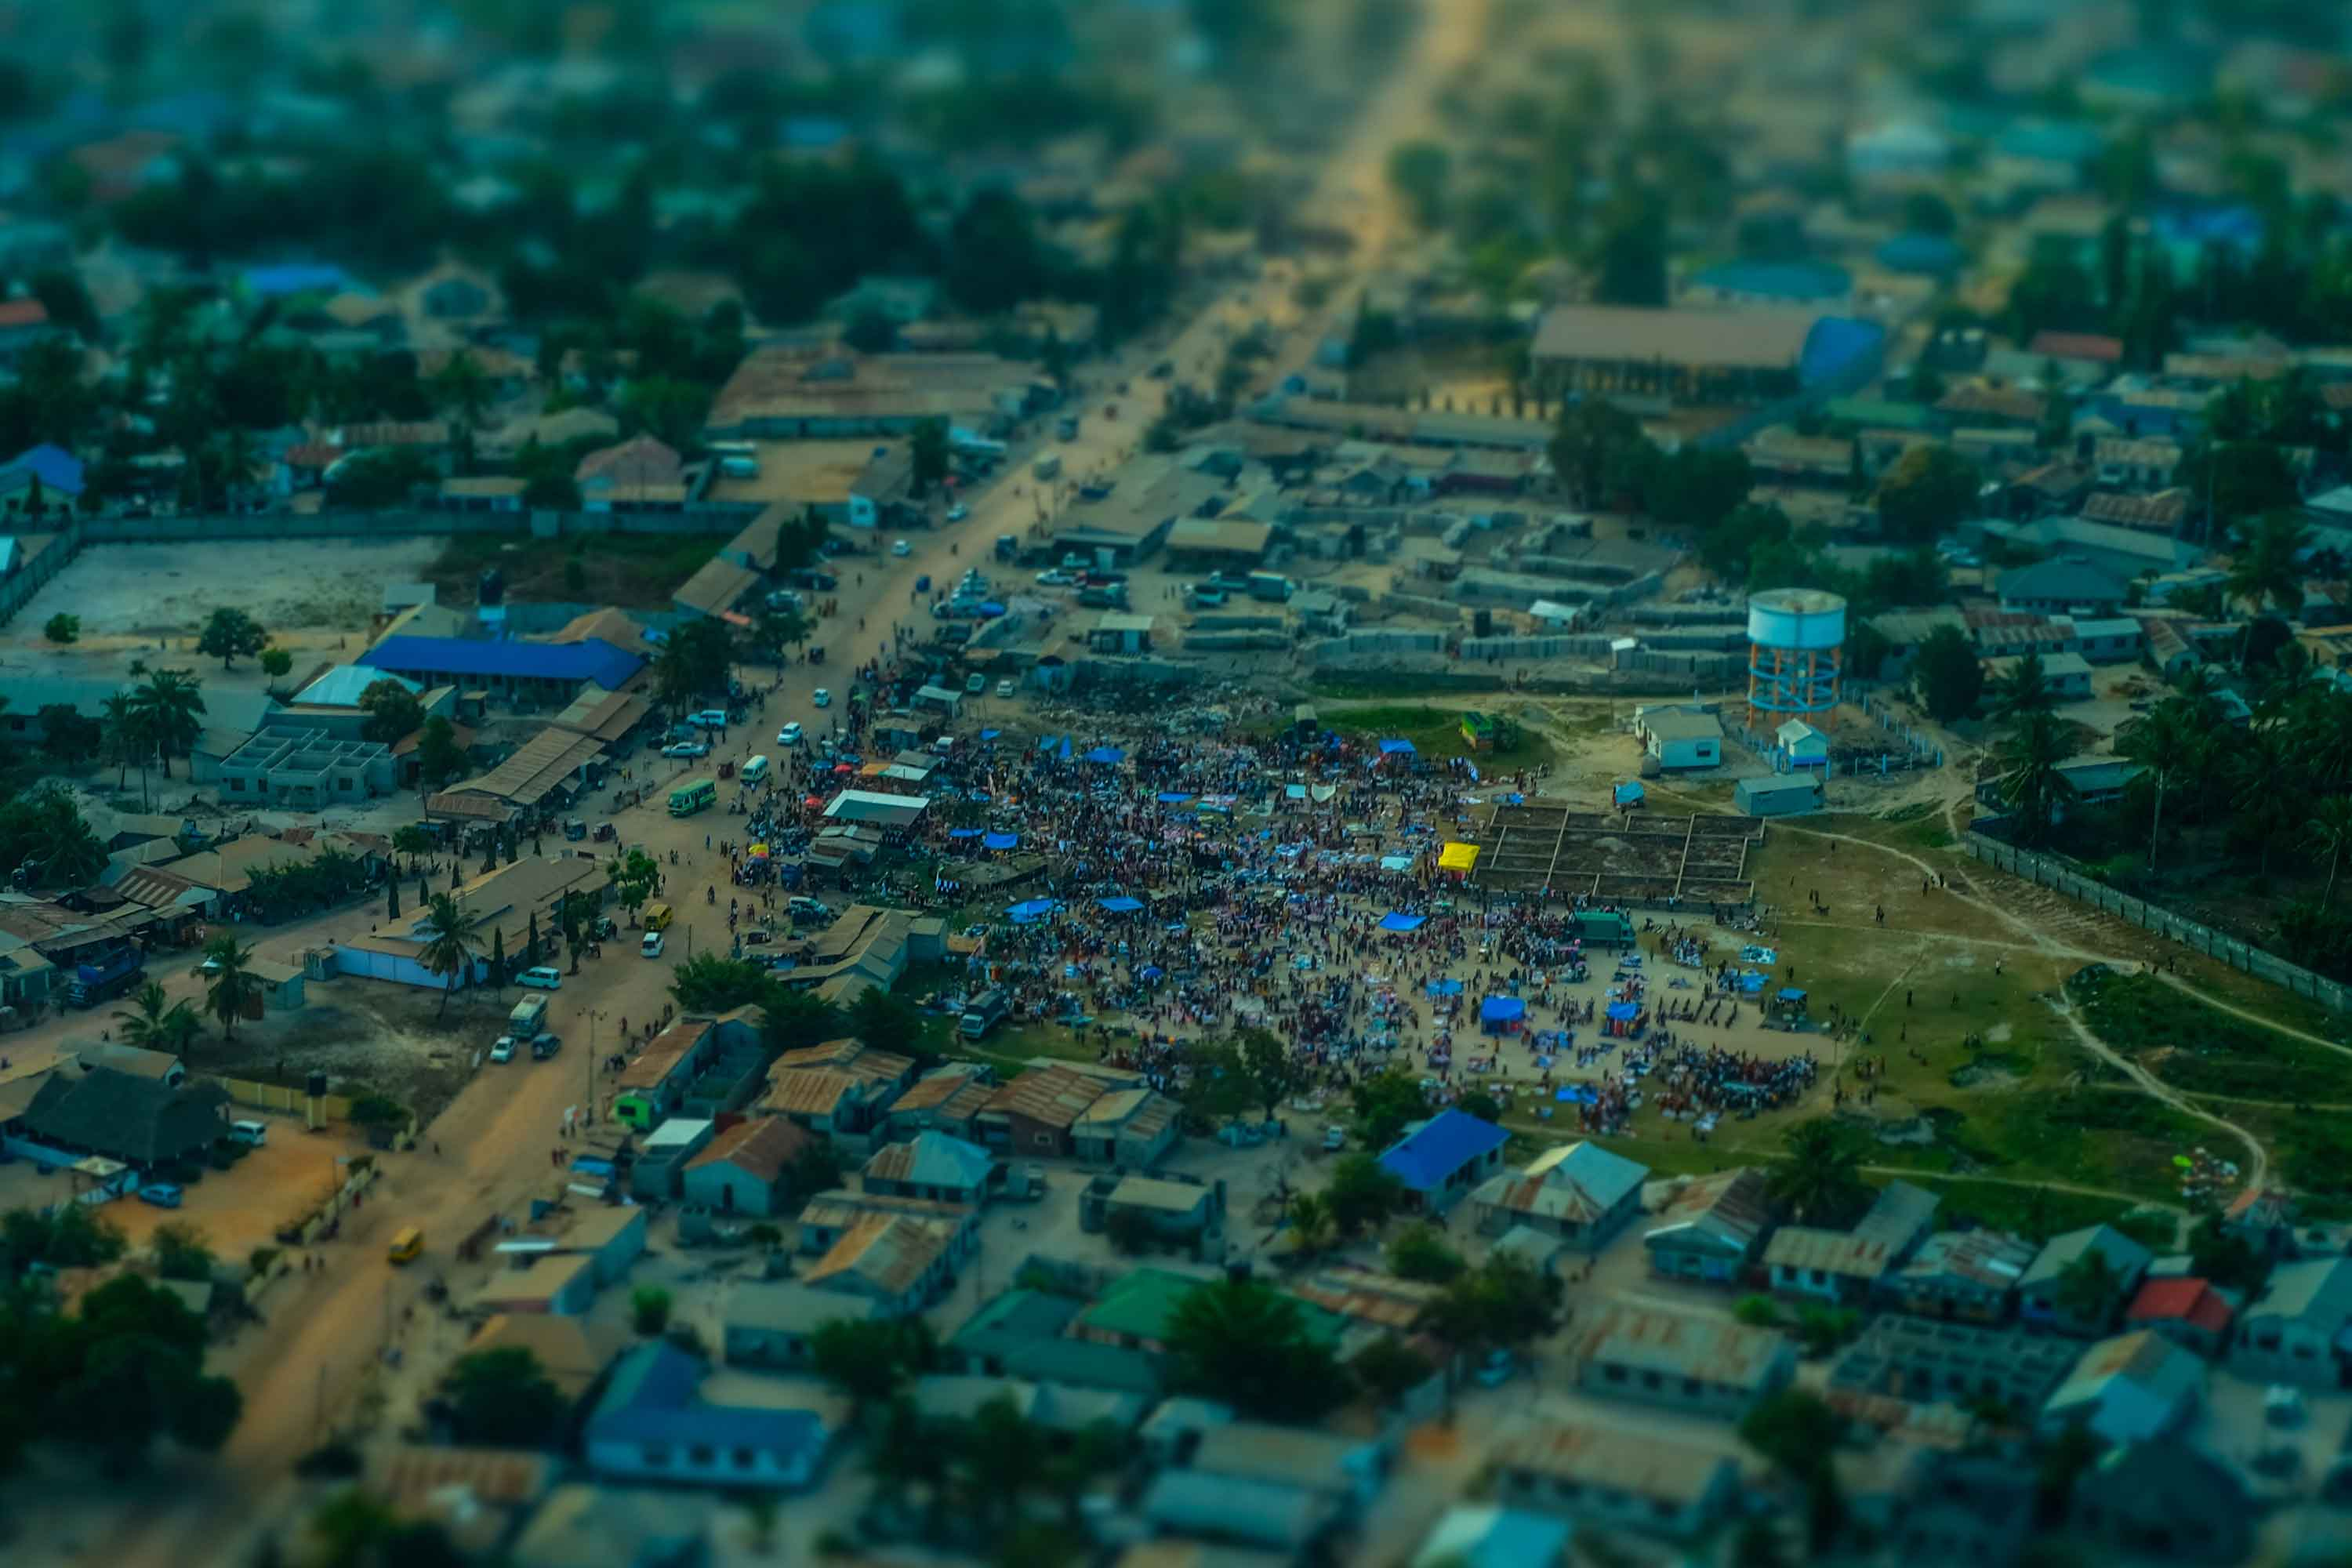 A street market in Dar es Salaam, Tanzania, fills up early in the morning.